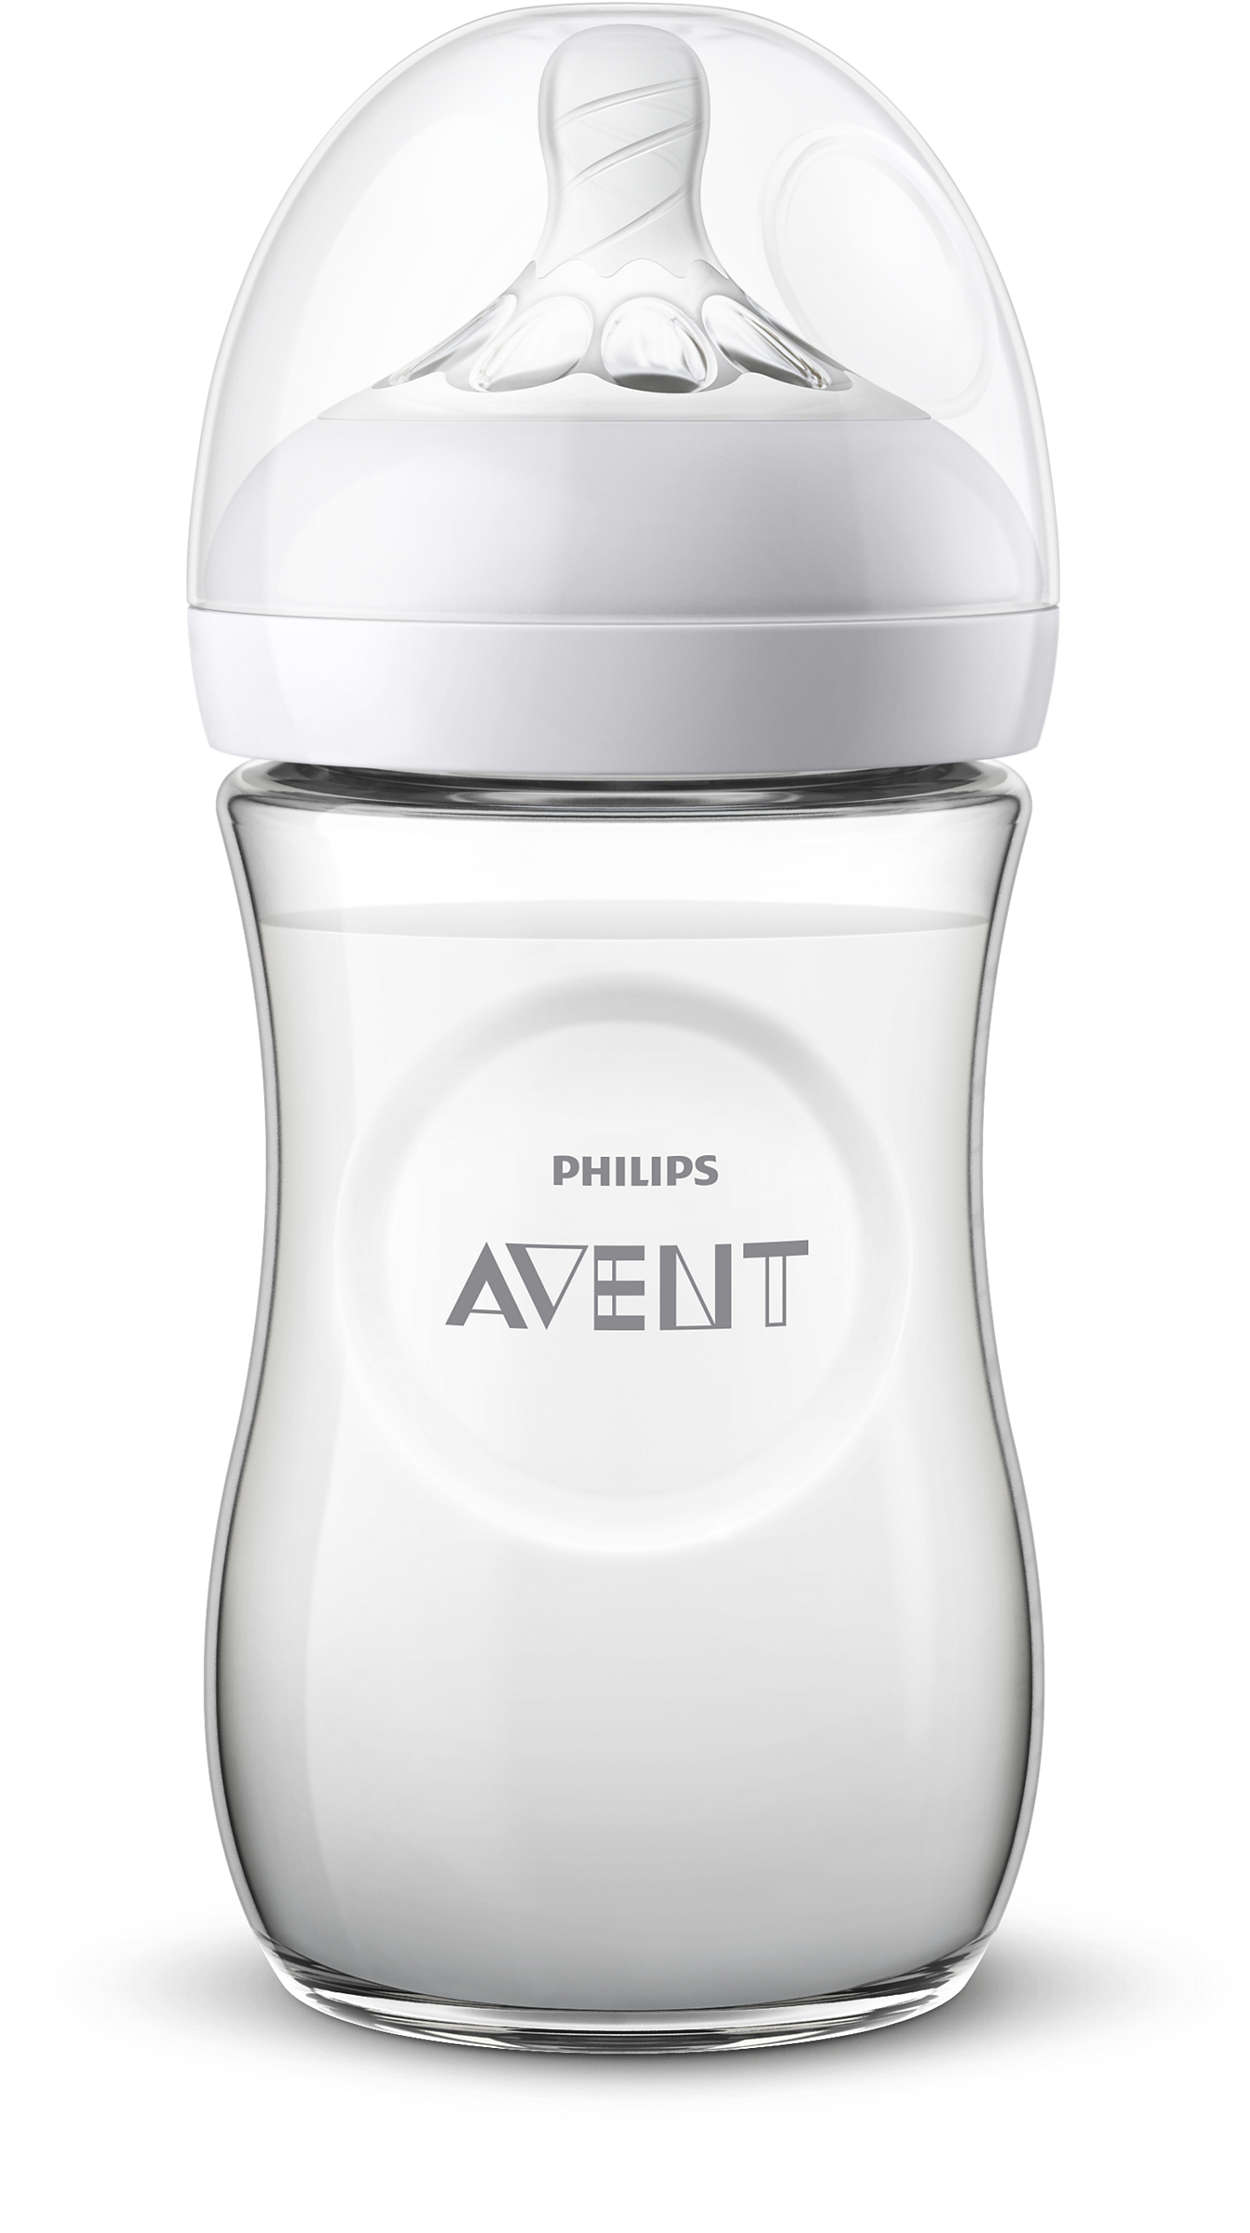 Lahev Natural Philips Avent 330 ml, 1 ks nová